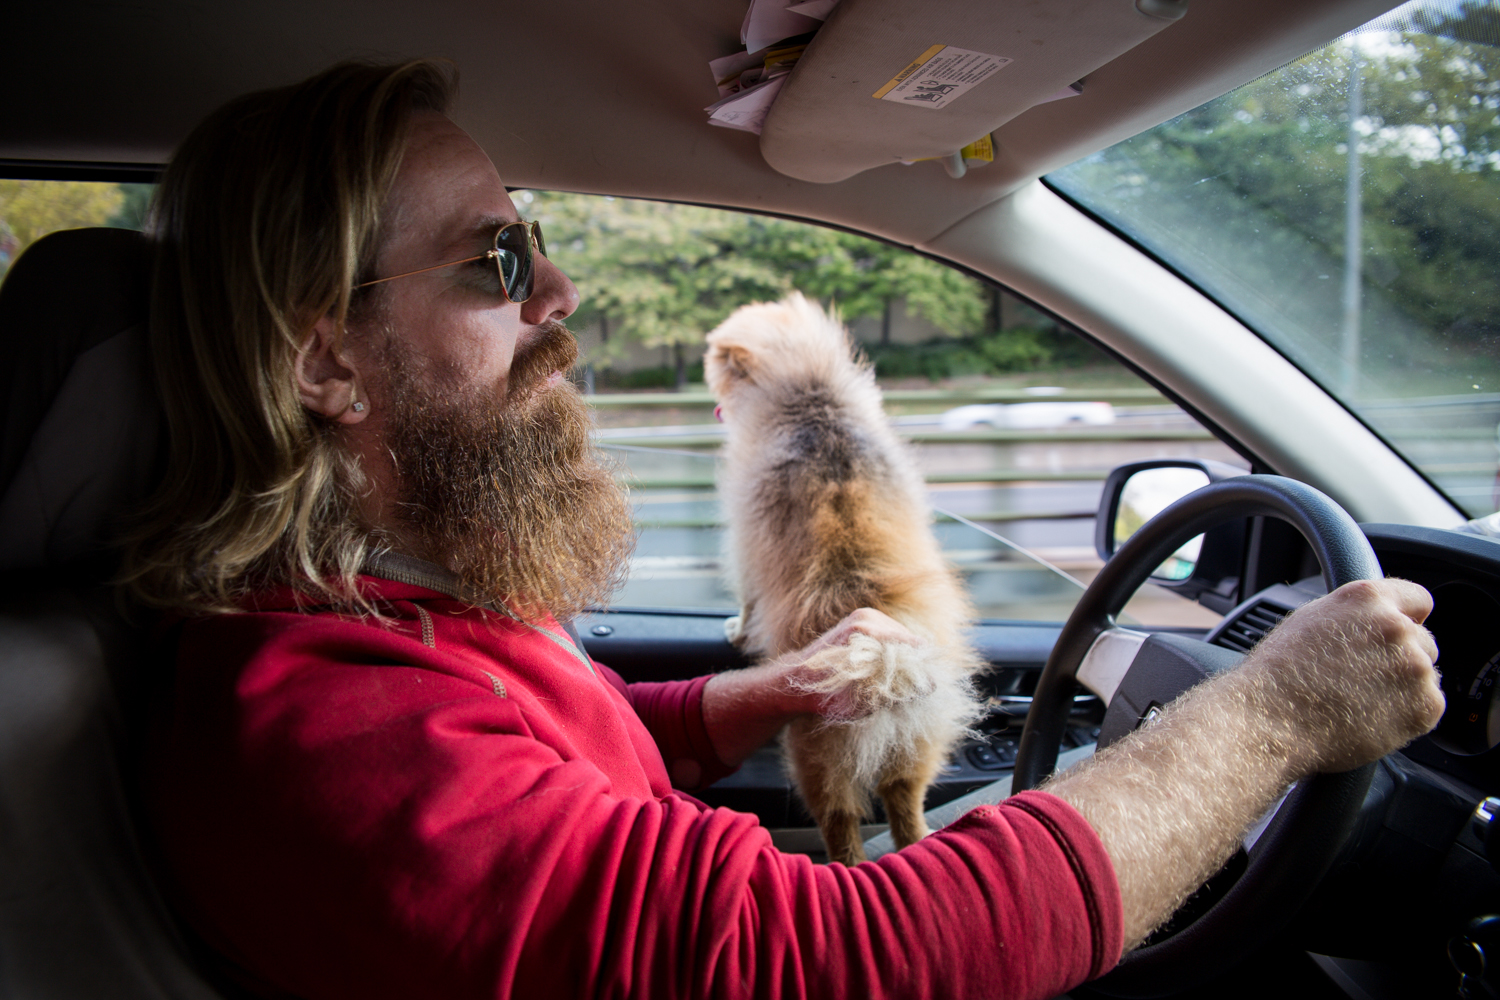 I think it's worth pointing out here that he's holding the dog's tail to make sure it doesn't jump out the window. The dog never made an effort to jump out the window.  He's doing it just in case.  That's called professionalism.